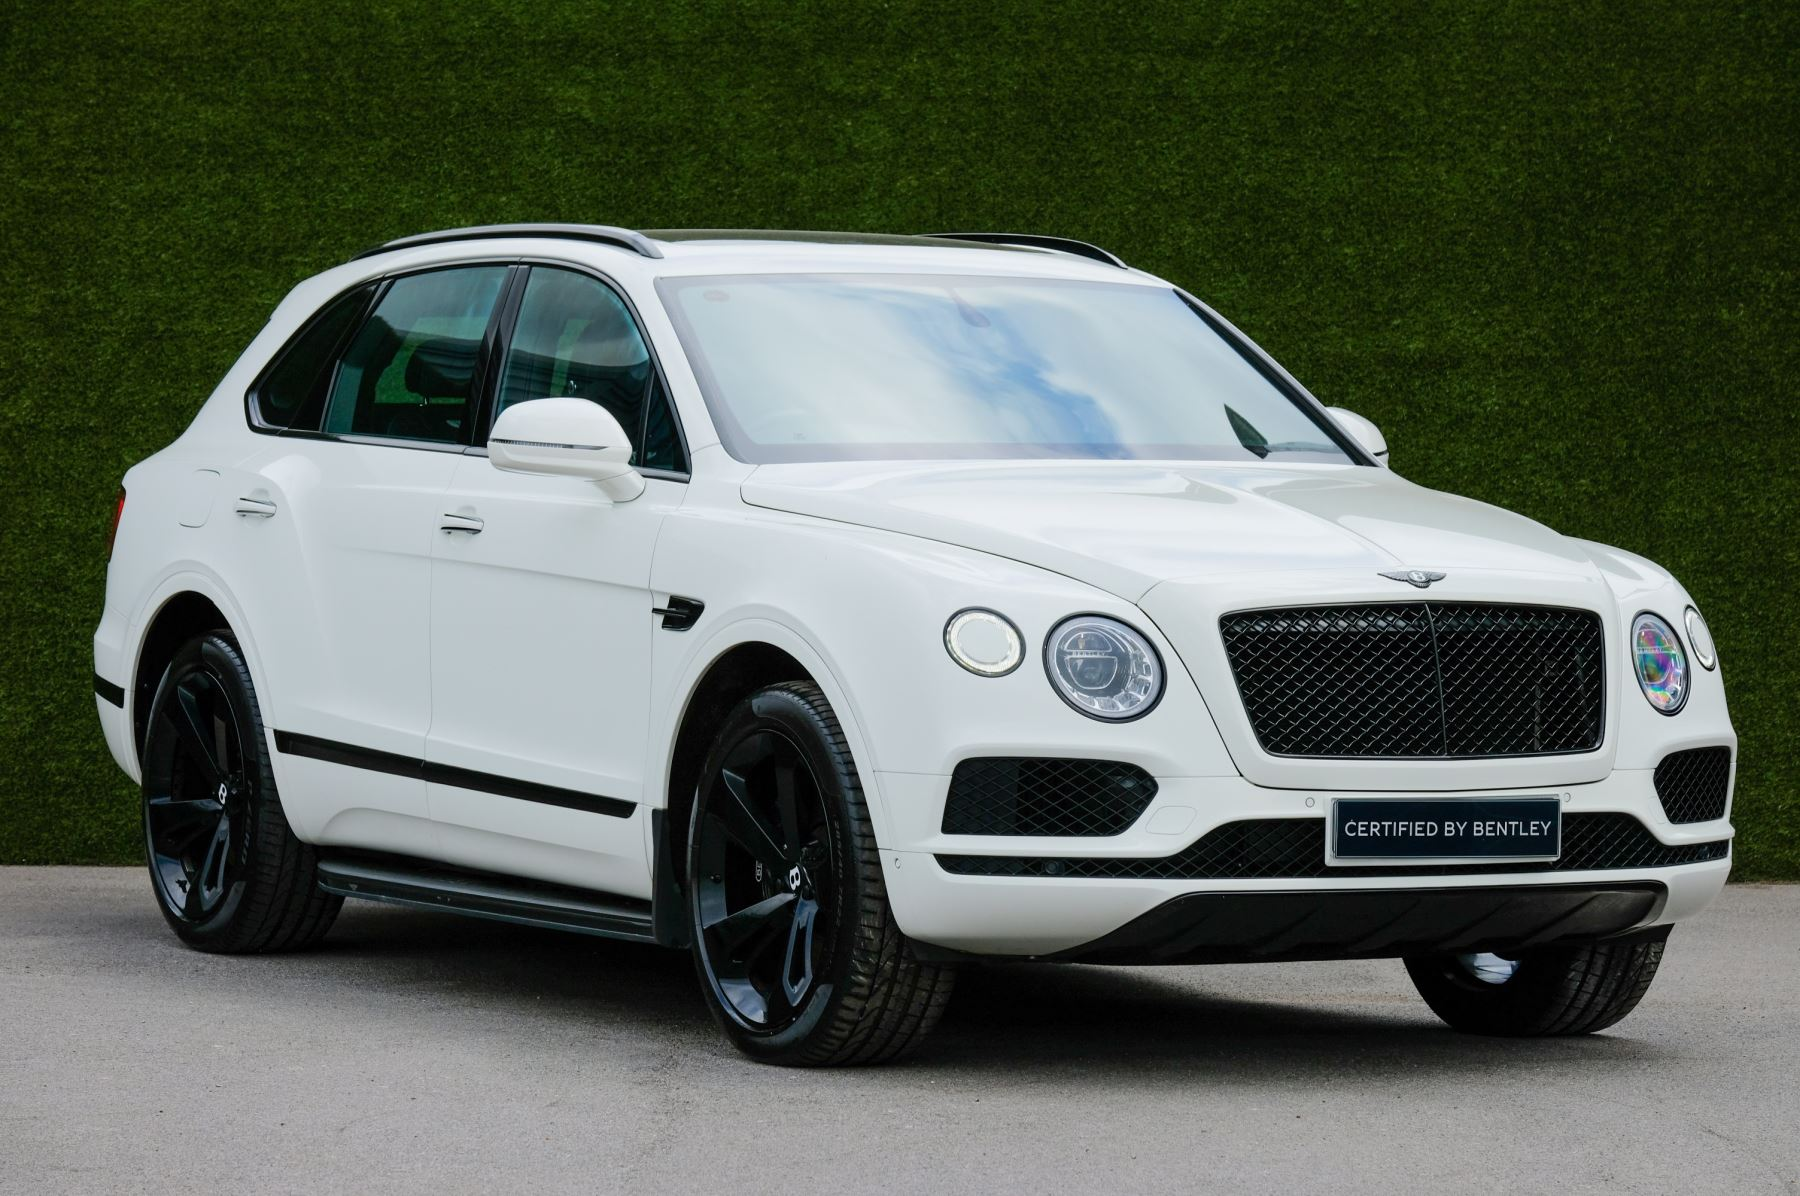 Bentley Bentayga 4.0 V8 5dr - Mulliner Driving Specification with 22 Inch Five Spoke Direction Alloys  Diesel Automatic Estate